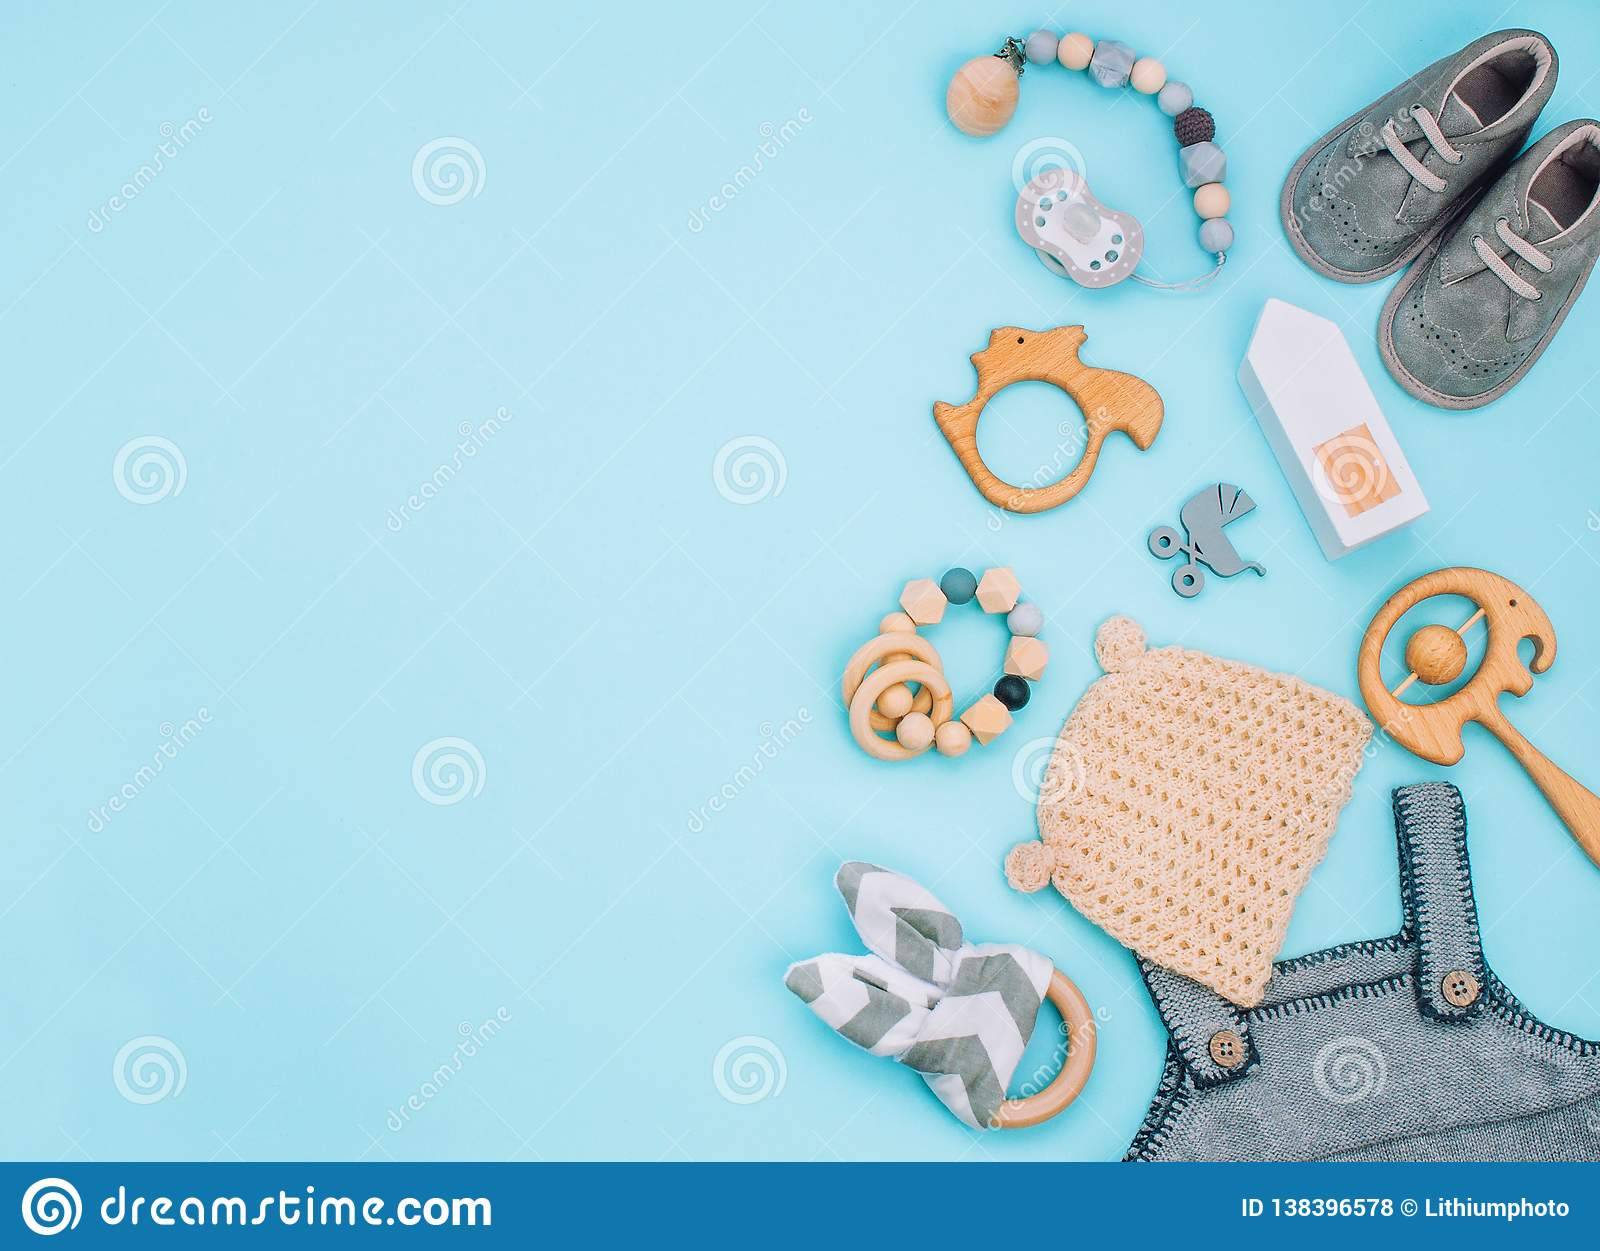 Baby Clothes Booties Soother And Wooden Toys On Light Blue Background Stock Photo Image Of Clothes Fashion 138396578